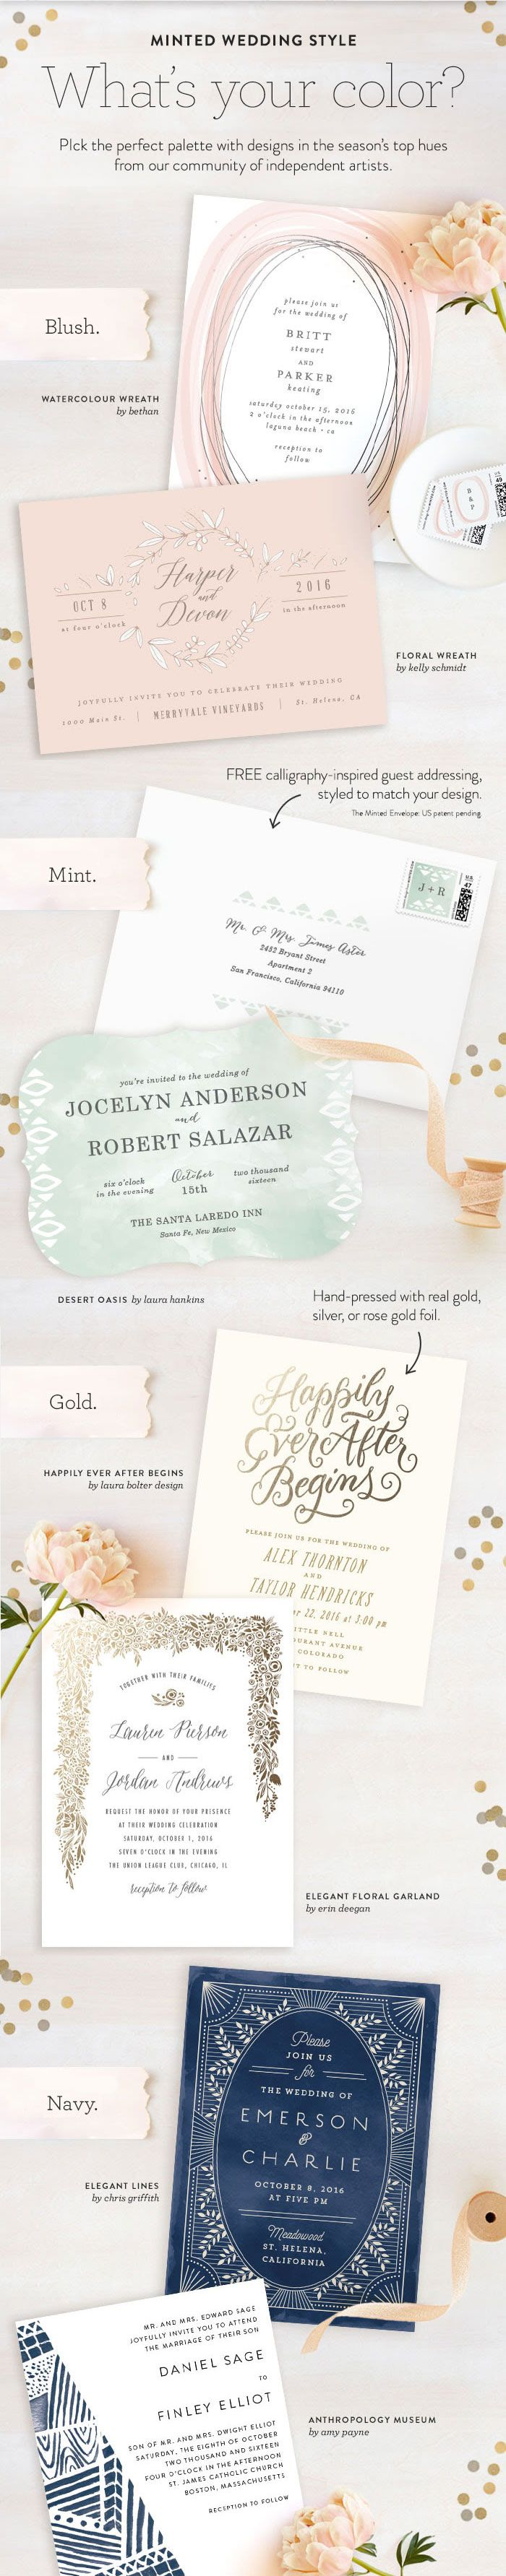 What are your wedding theme colors? Match your wedding colors to ...